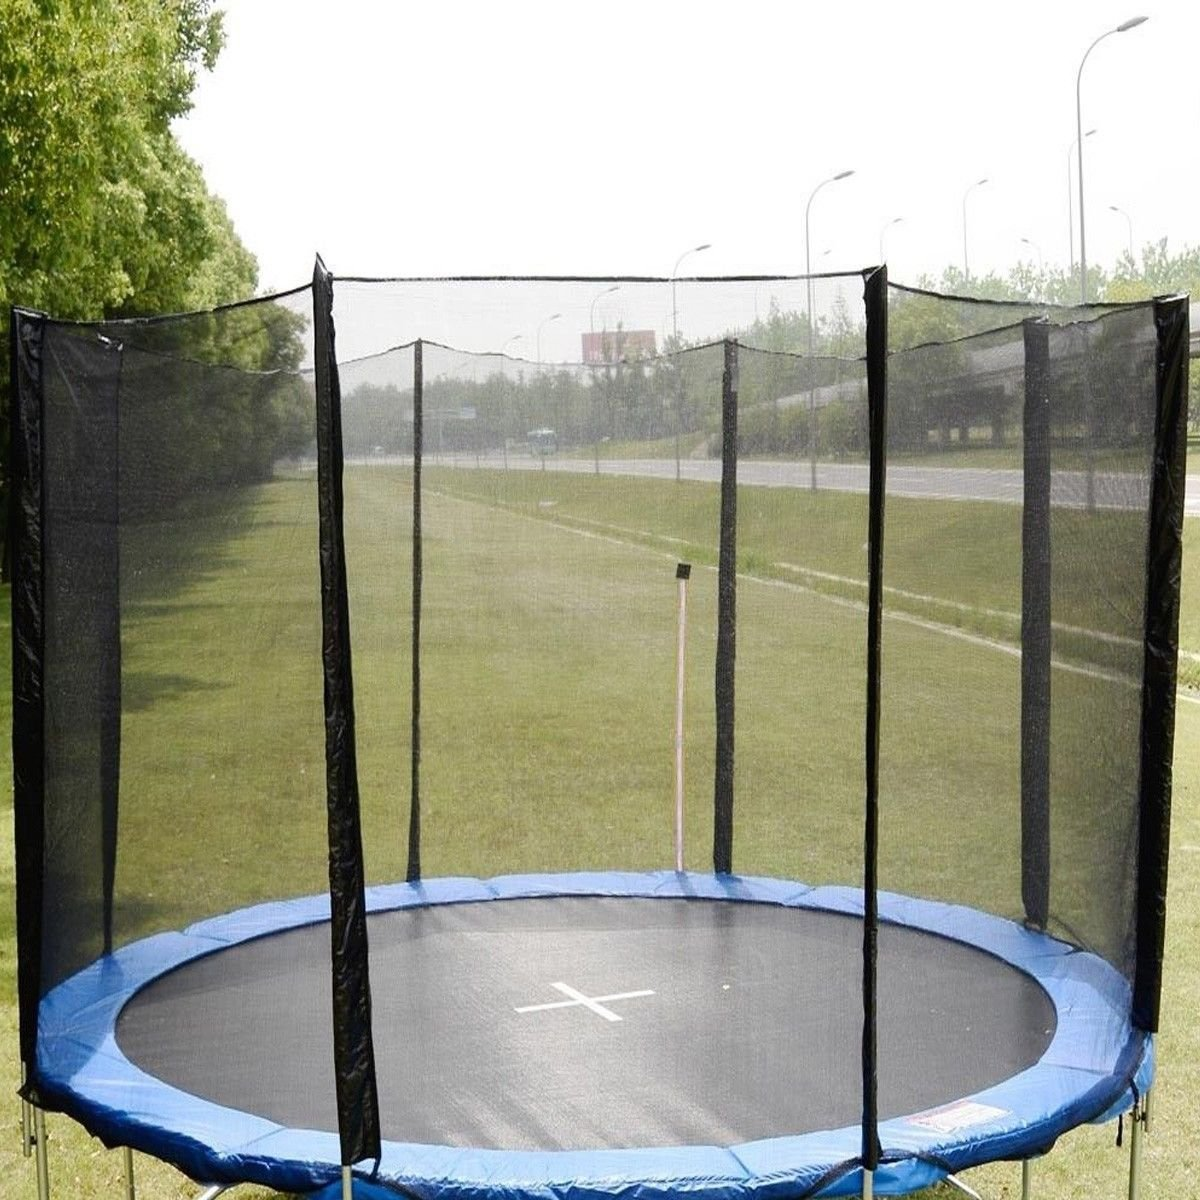 12FT Round Trampoline Enclosure Safety Net Fence Replacement W/Sleeves 8 Poles usa